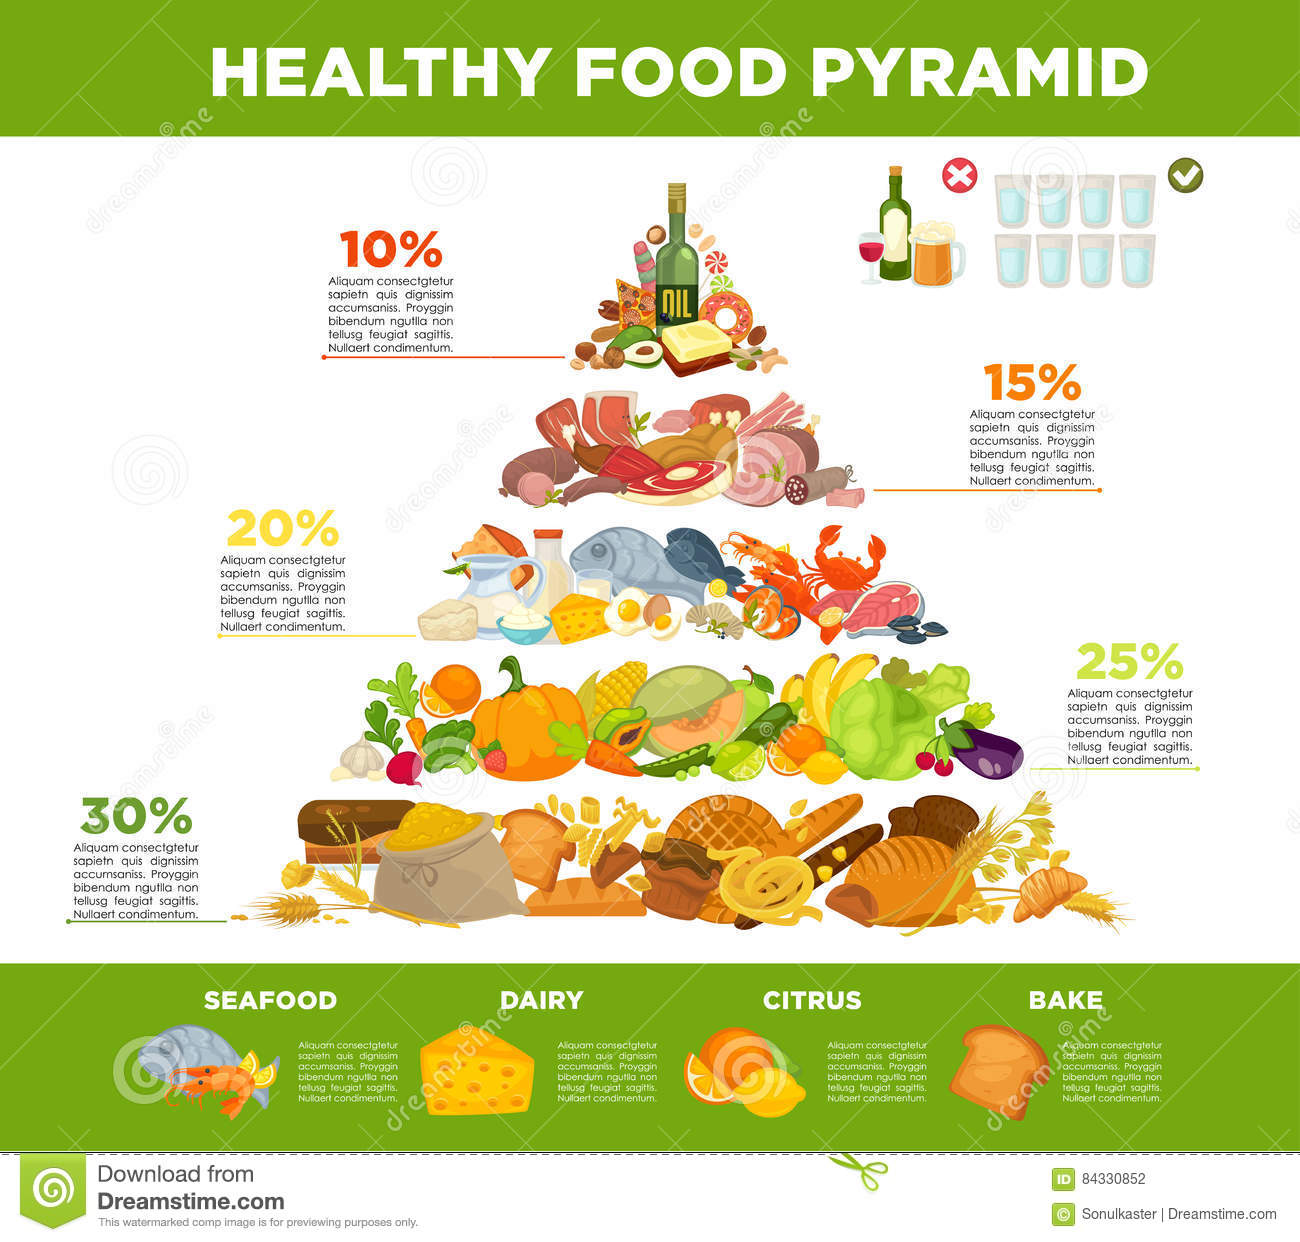 how to use the food pyramid